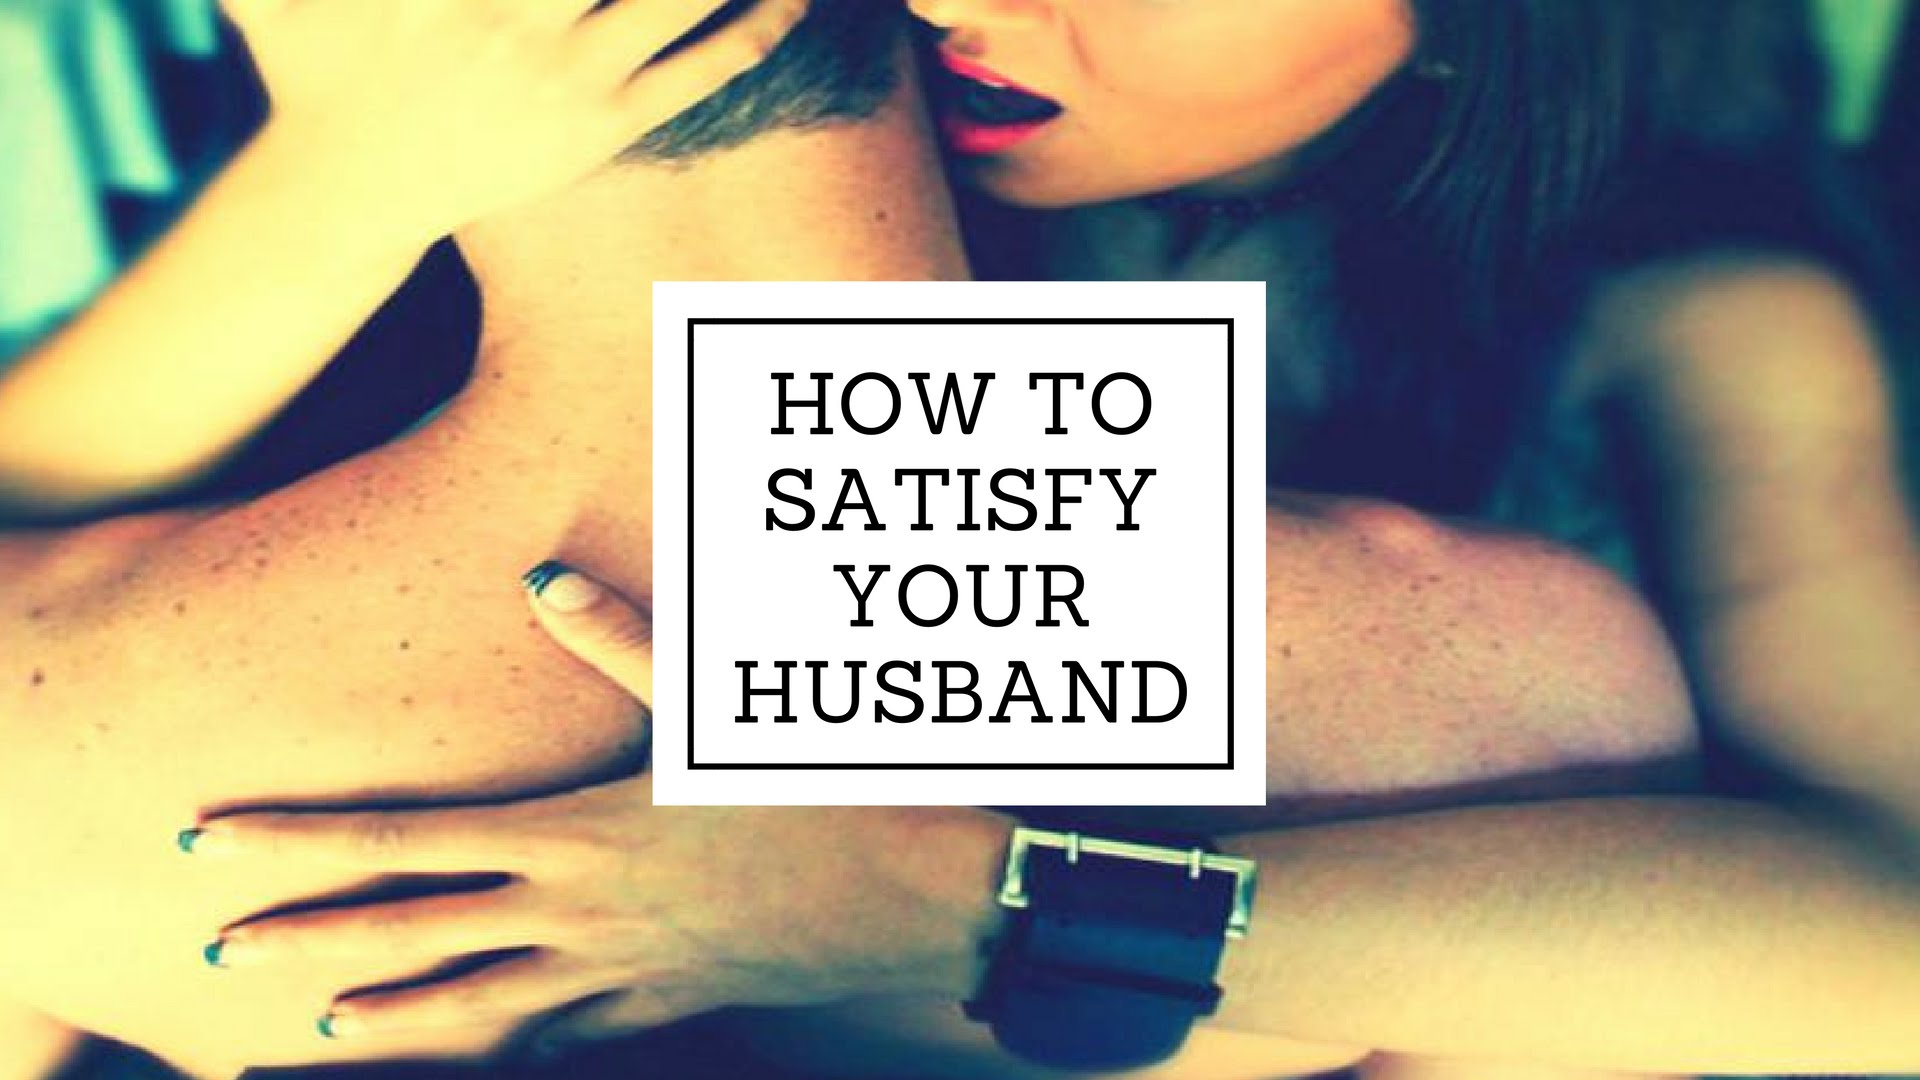 How Do I Satisfy My Husband Sexually